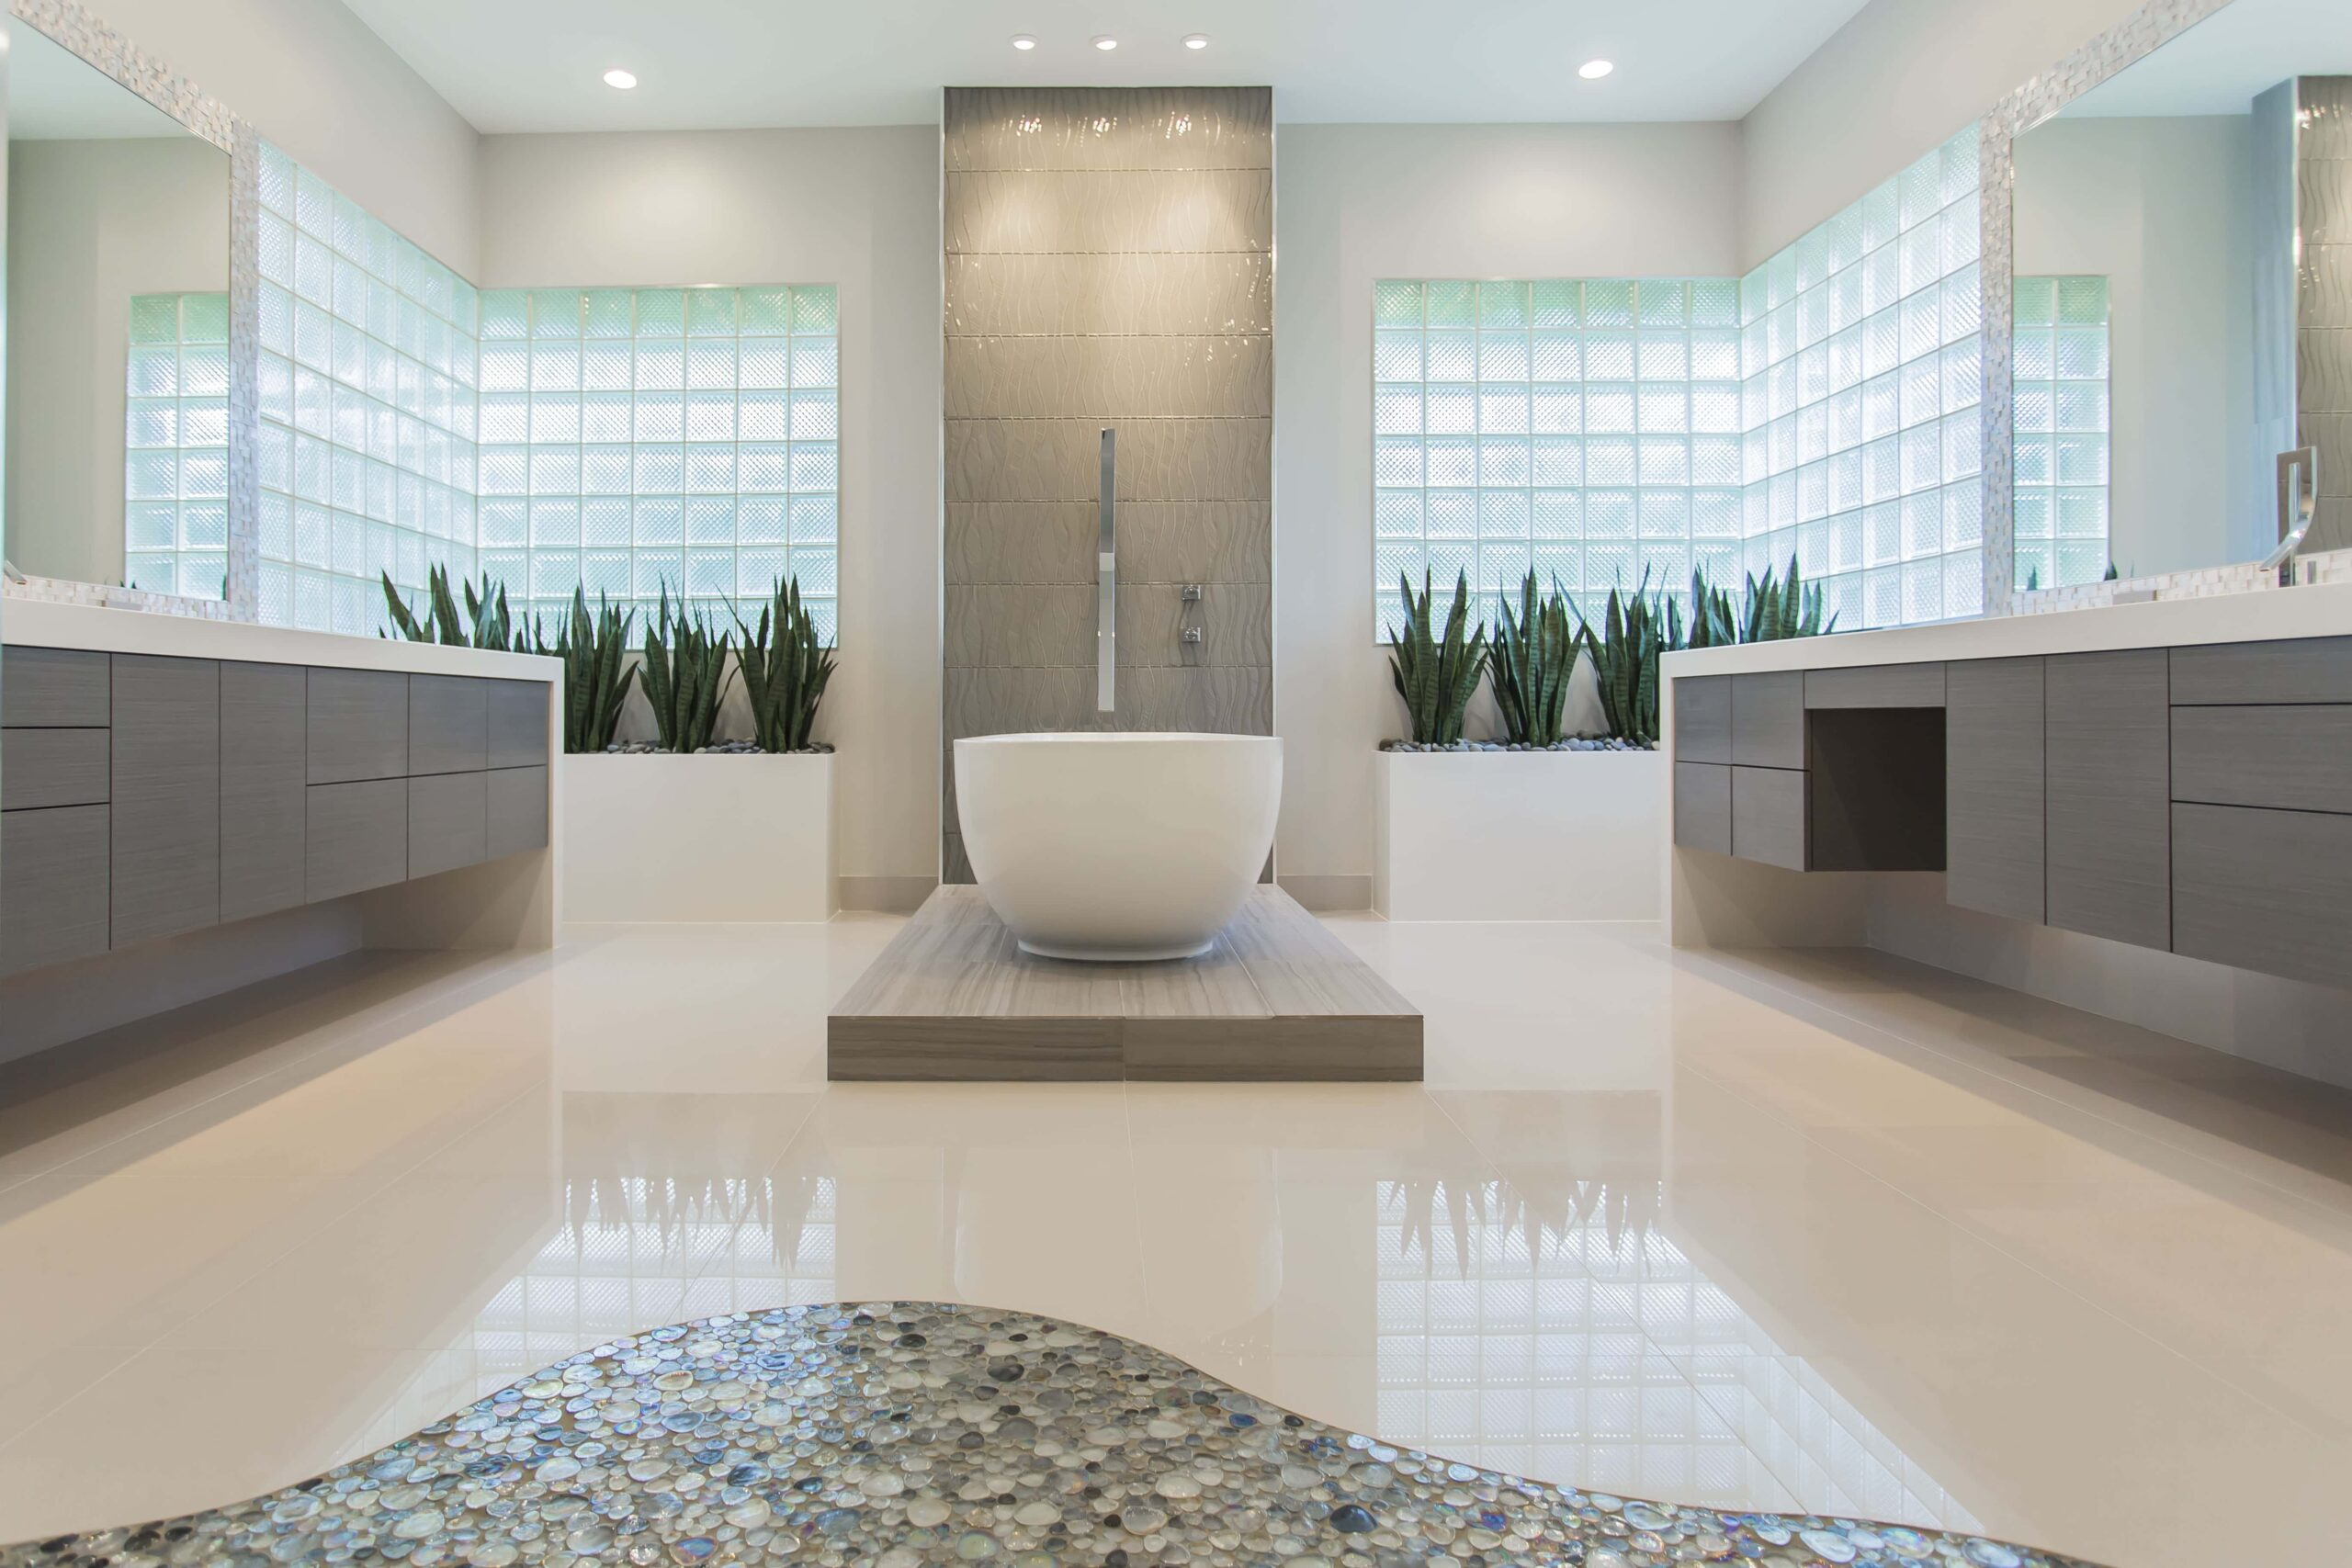 Bathroom Remodeling Houston Tx memorial modern master bath remodel | houston, tx | 2015